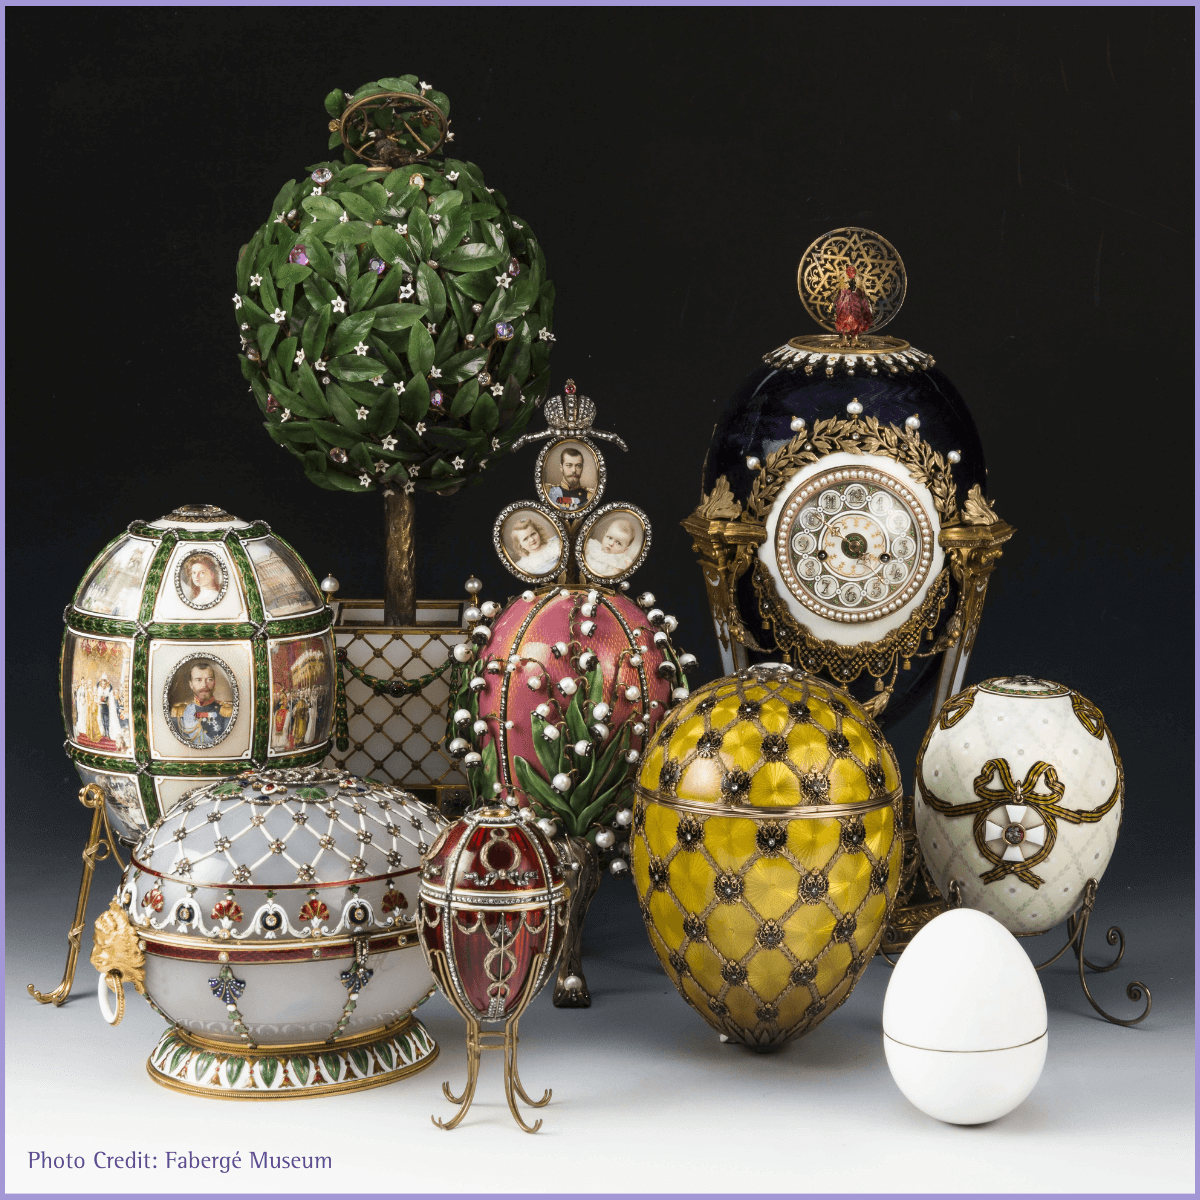 Fabergé Egg Collection